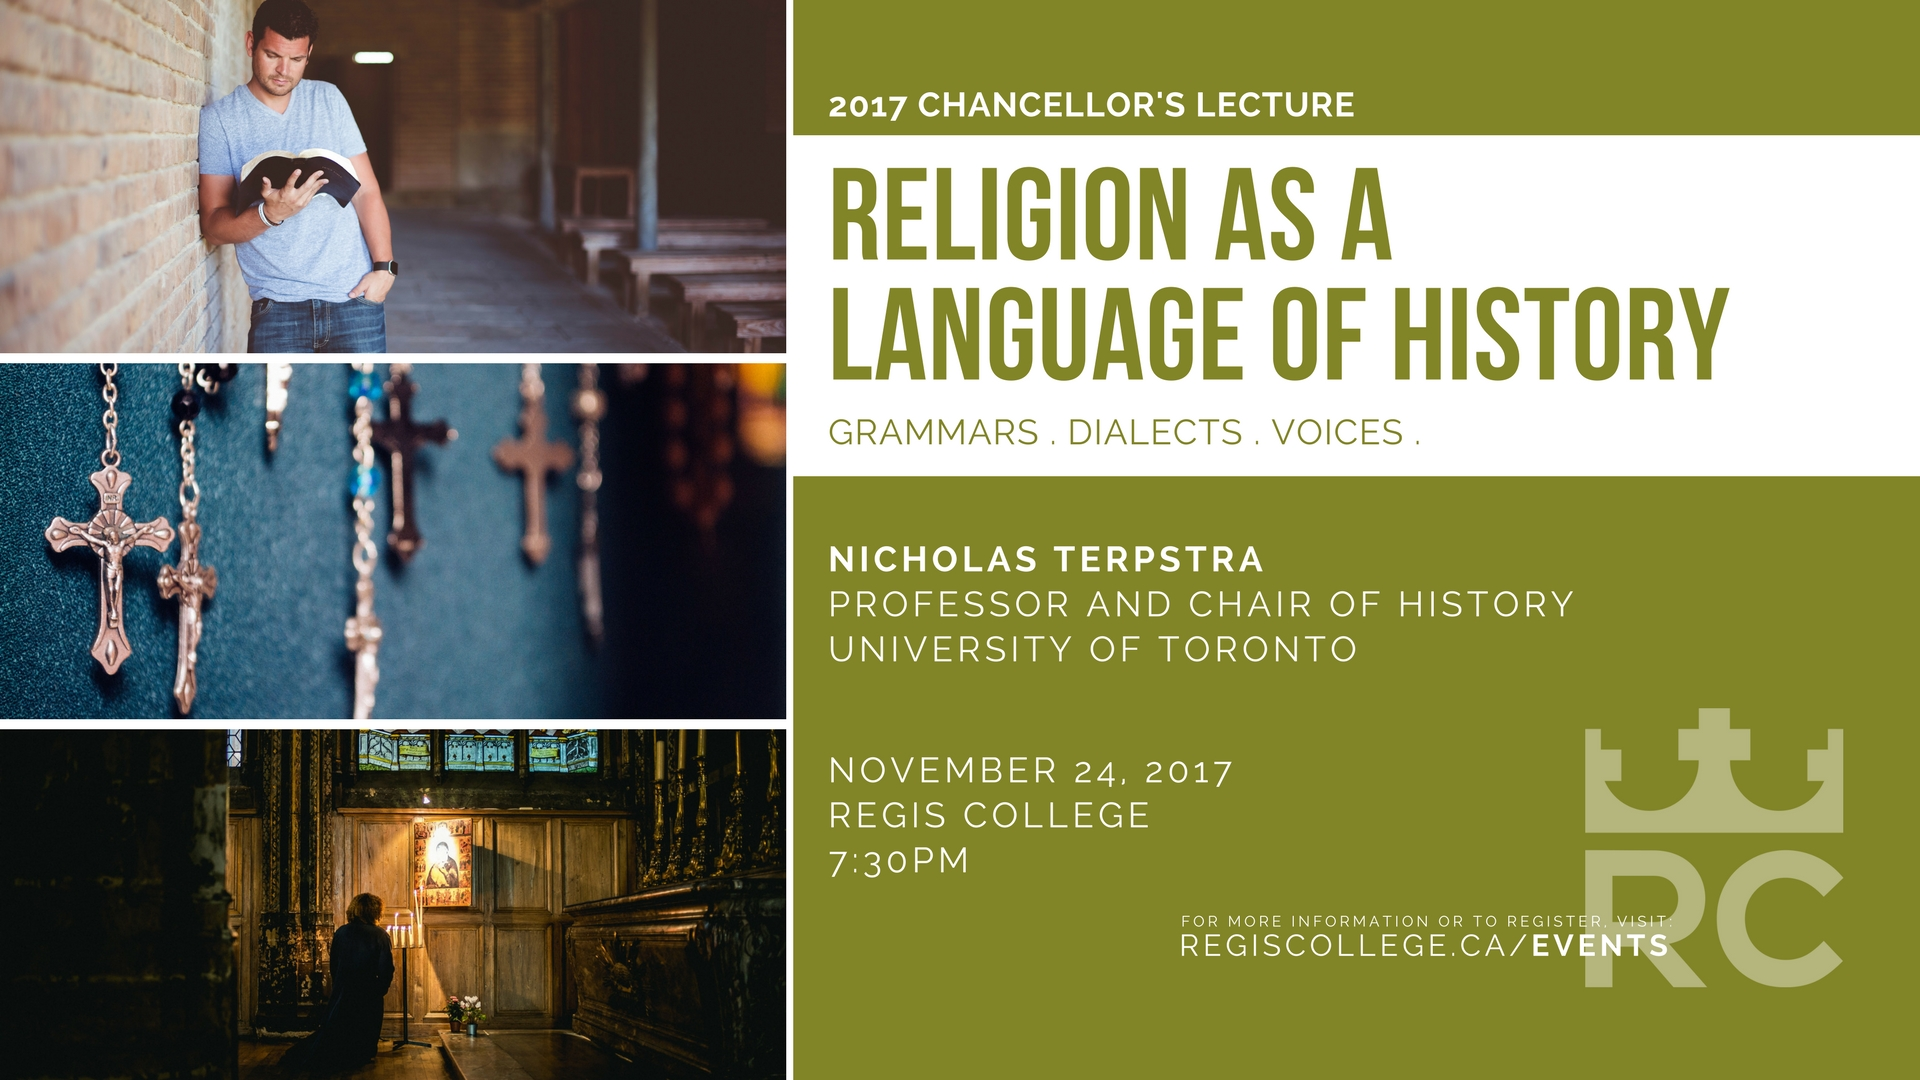 Regis College 2017 Chancellor's Lecture - Religion as a Language of History